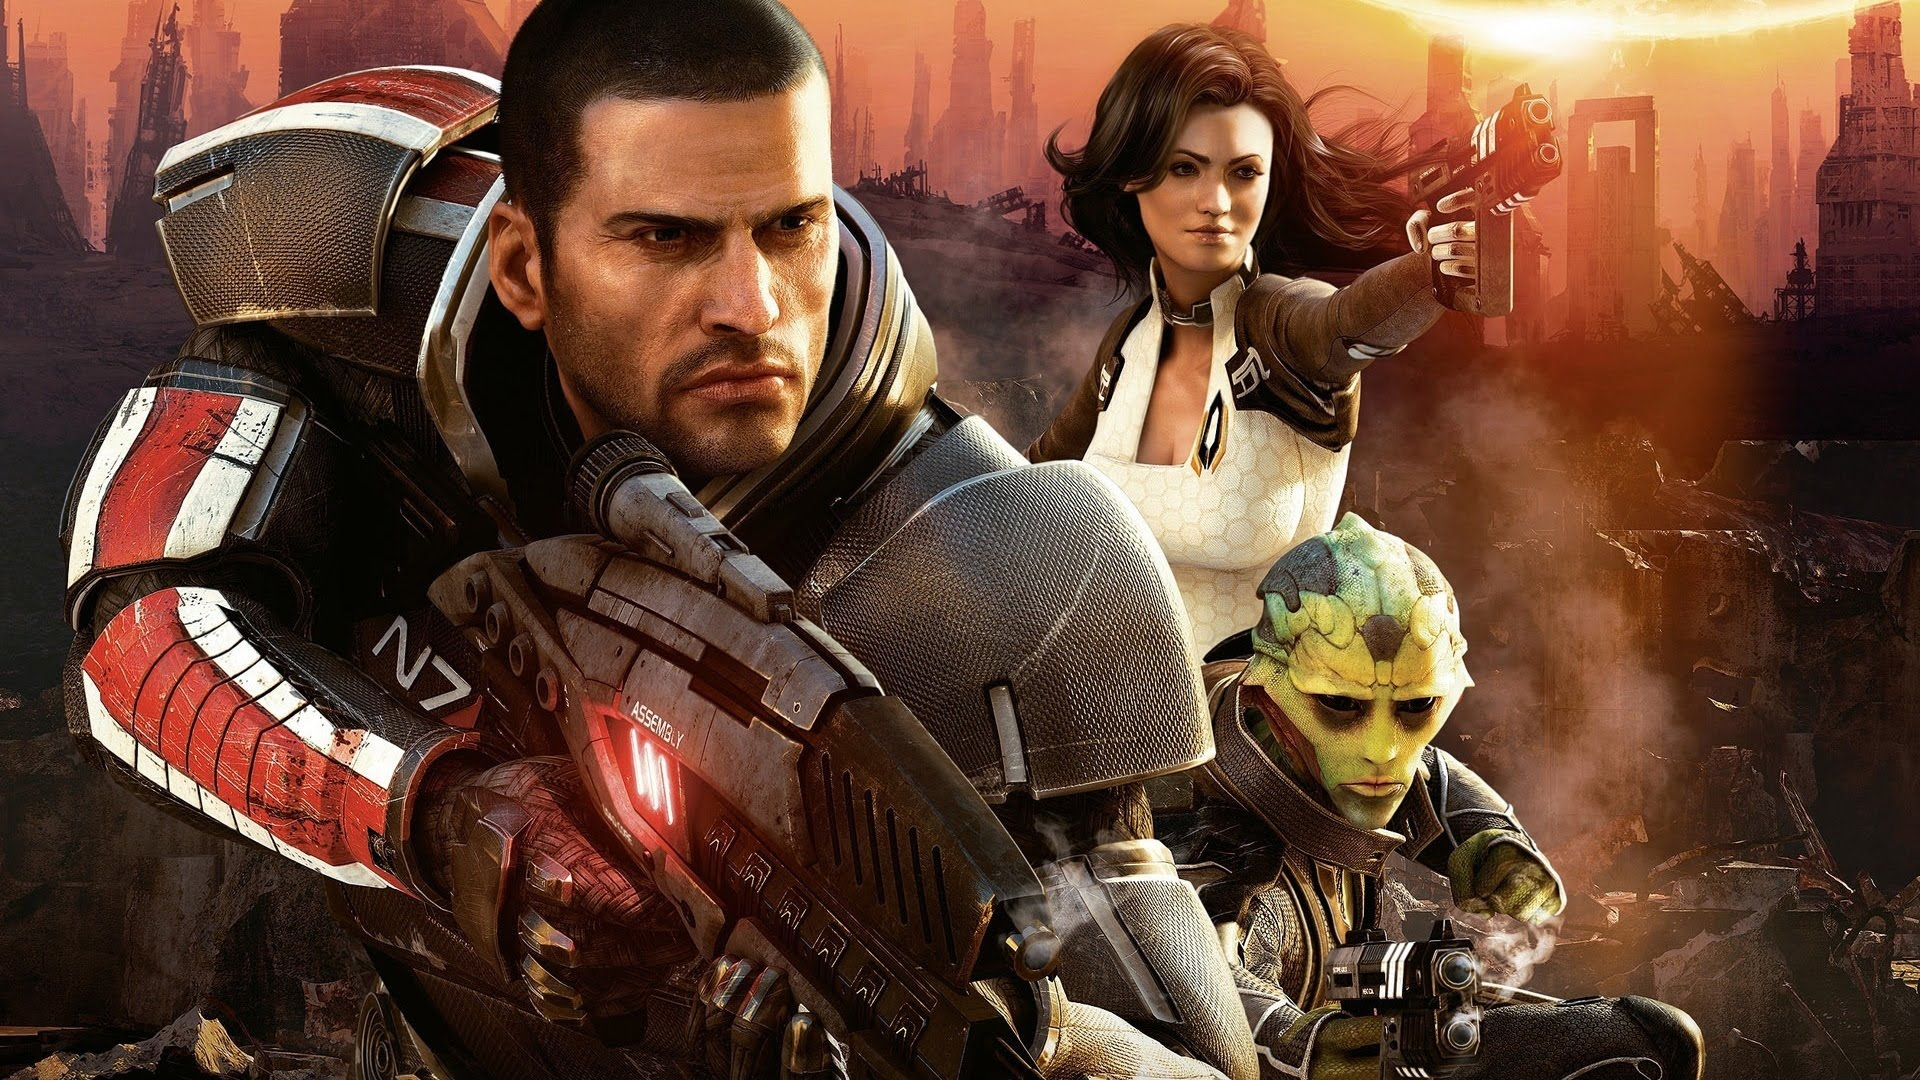 Mass Effect 2 Wallpapers Video Game Hq Mass Effect 2 Pictures 4k Wallpapers 2019